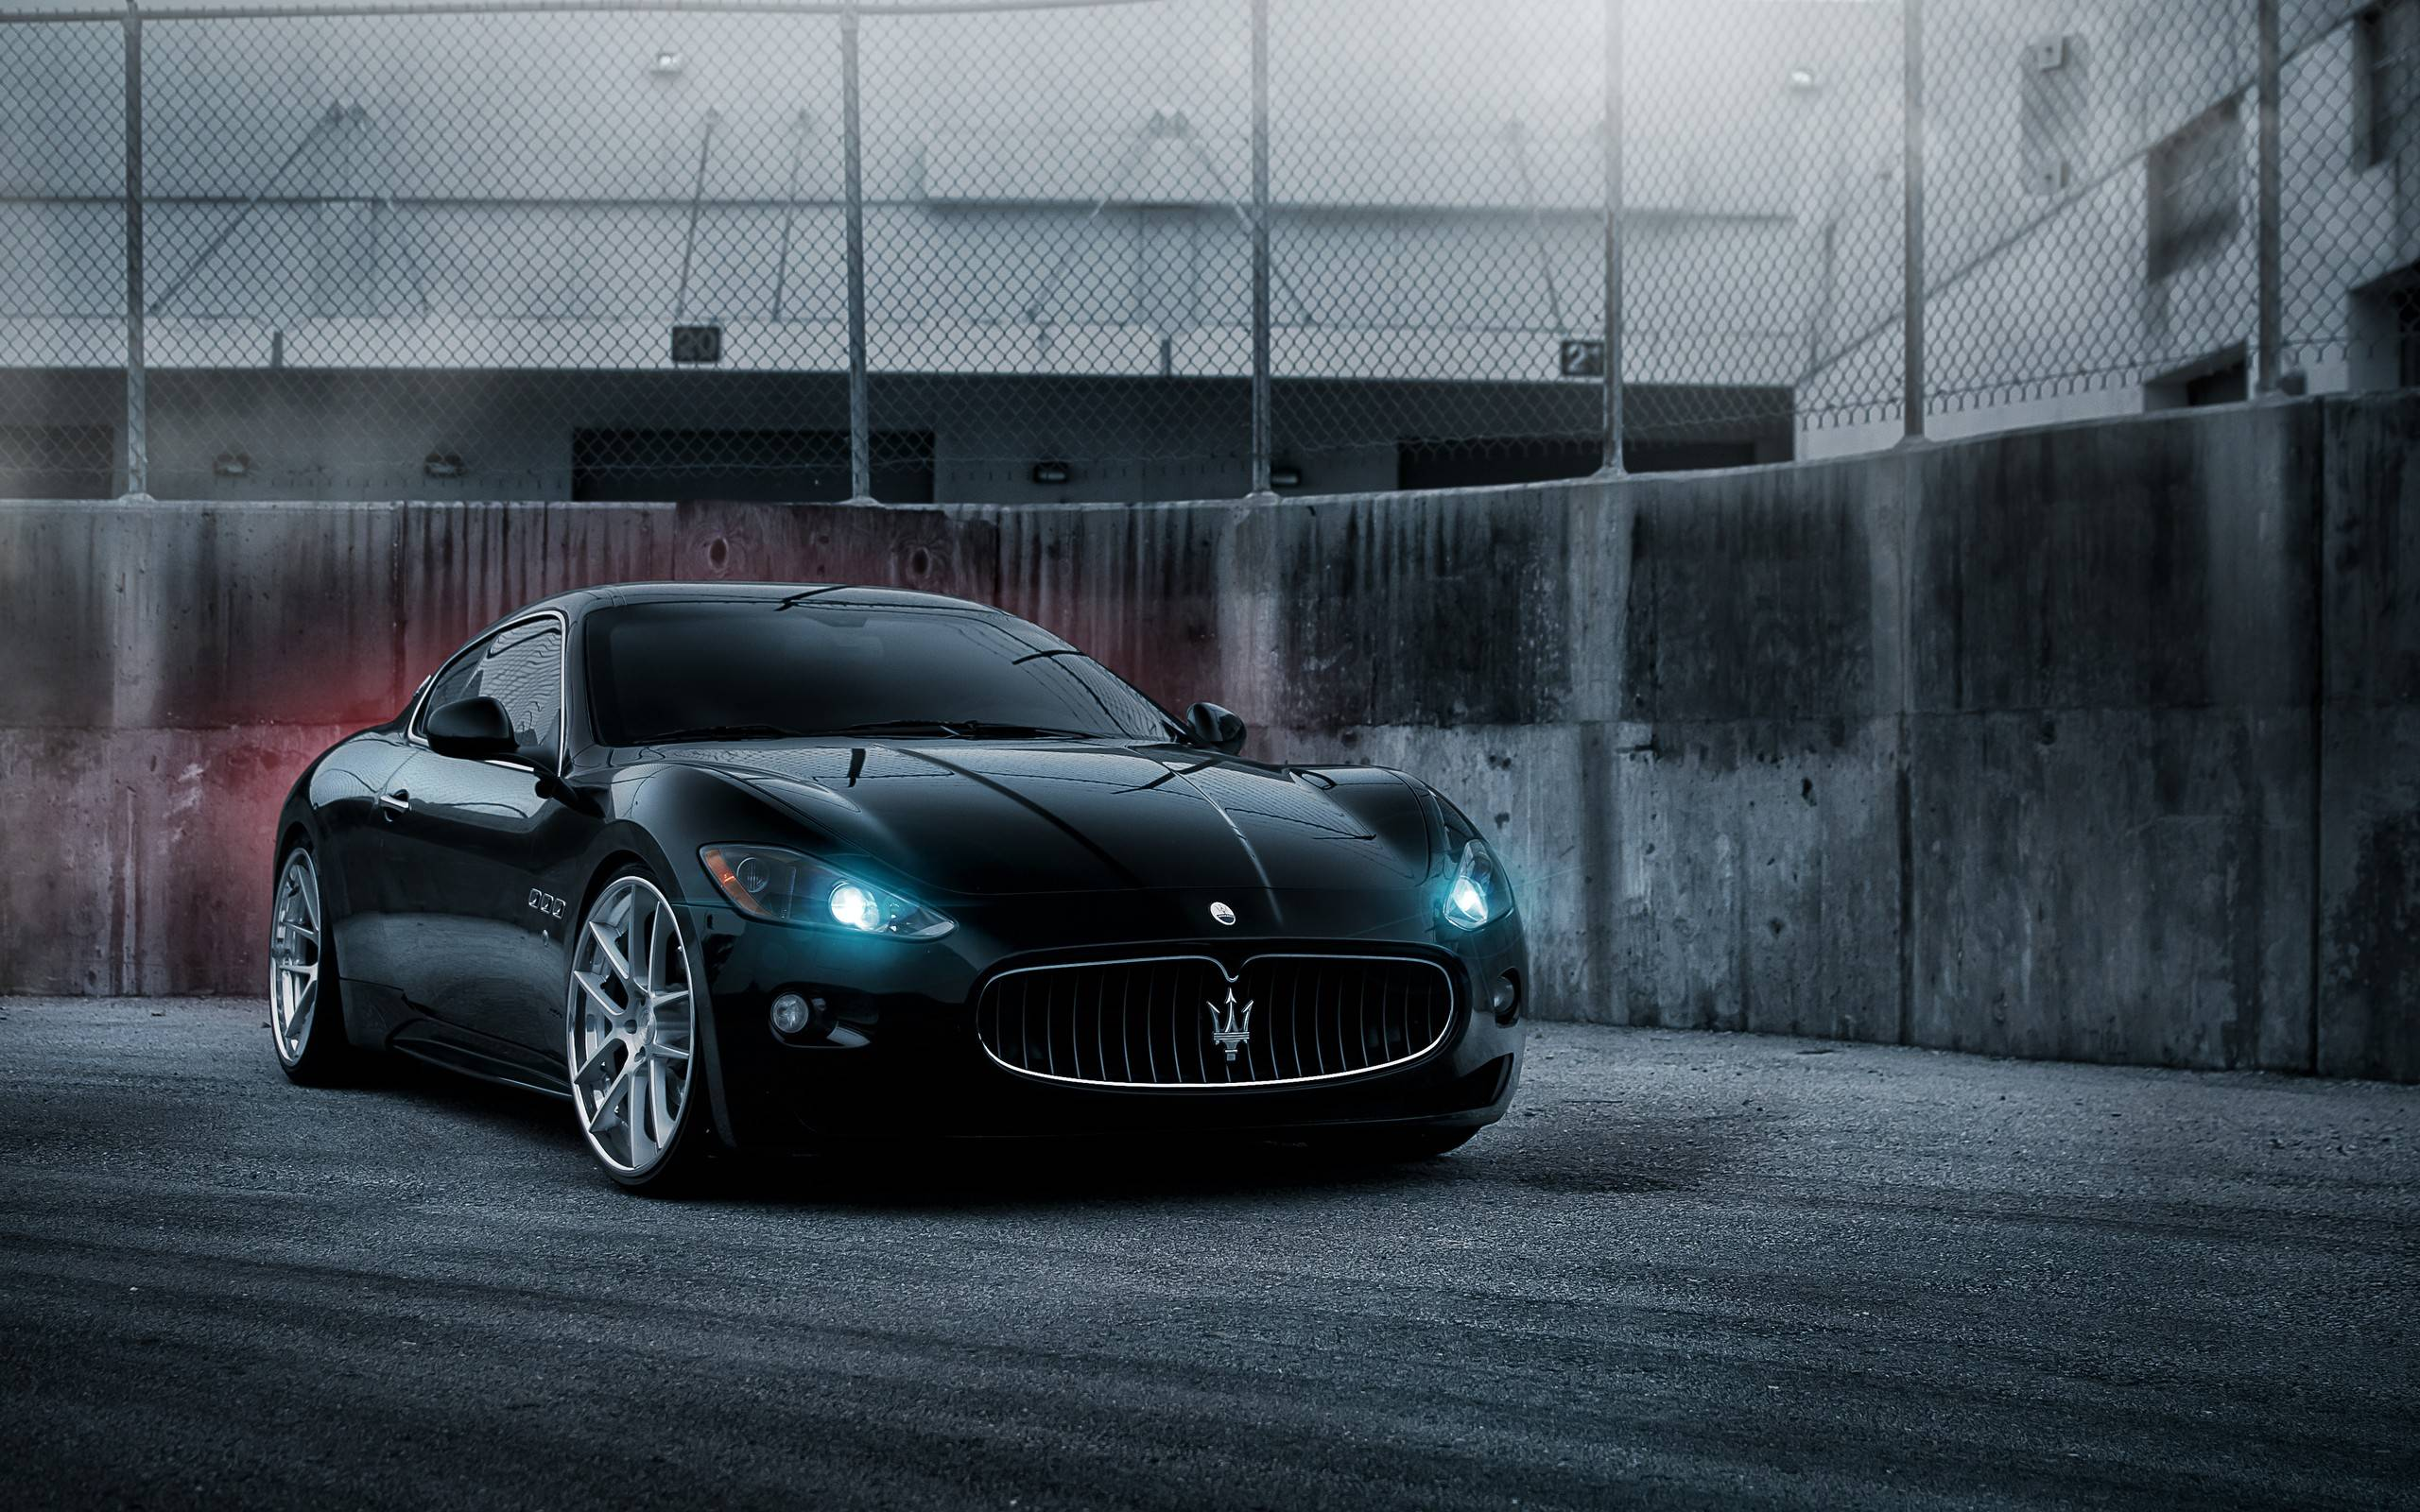 maserati quattroporte hd widescreen - photo #35